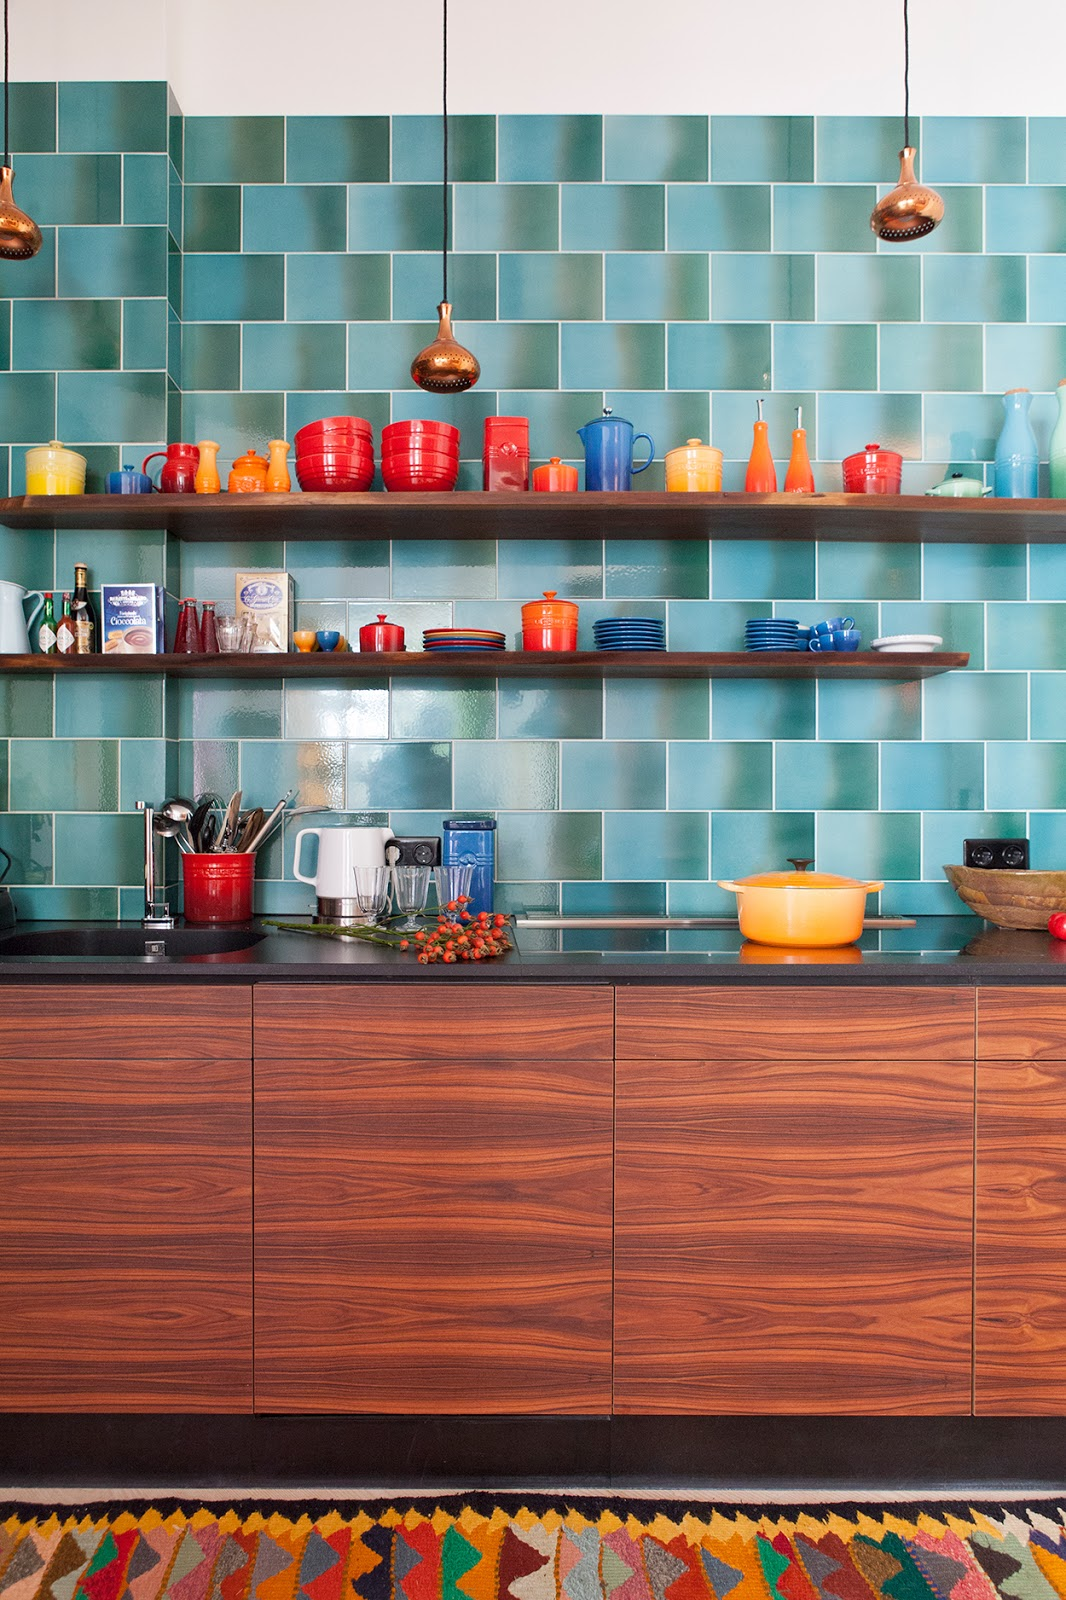 colorful kitchen in Berlin designer loft, wood cabinets, colorful pattern rug, 60s style